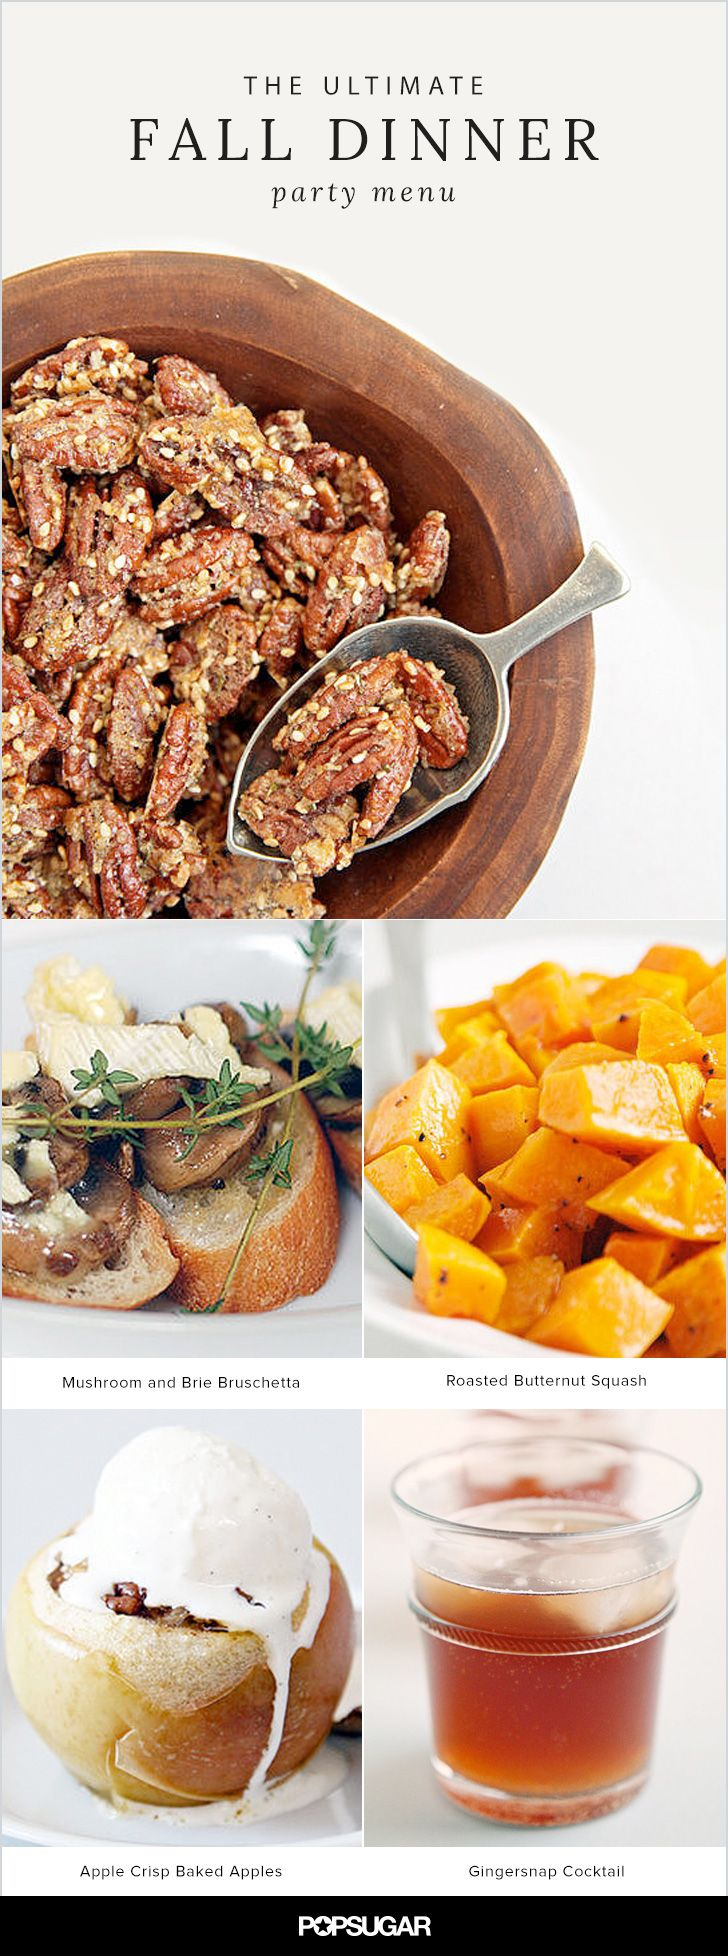 fall bridal shower menu ideas%0A The Ultimate Fall Dinner Party Menu